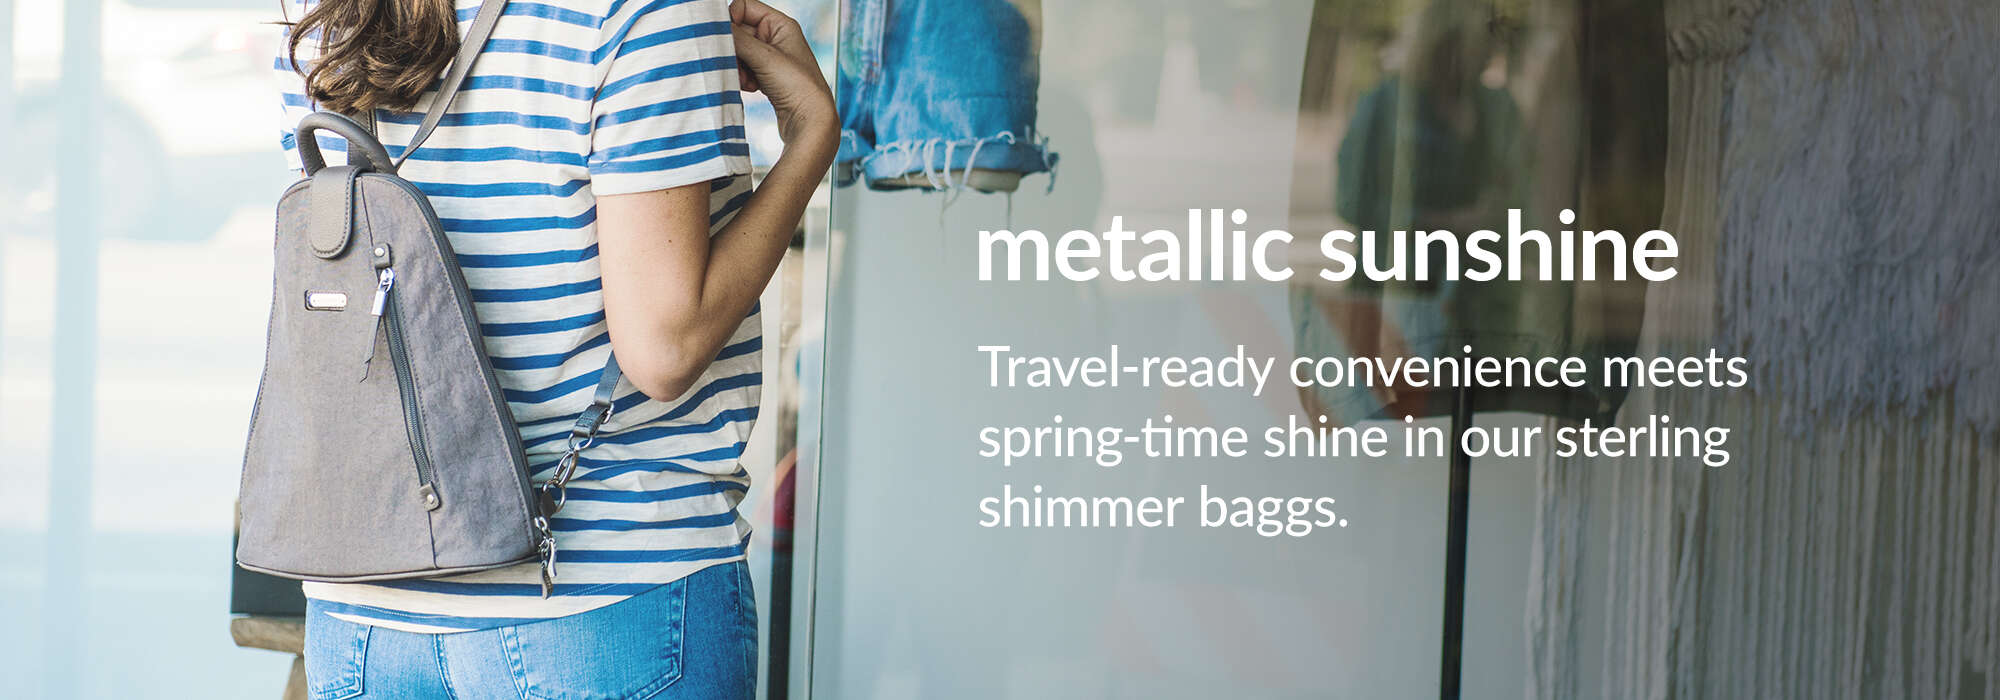 Metallic Sunshine. Travel-ready convenience meets spring-time shine in our sterling shimmer bags.